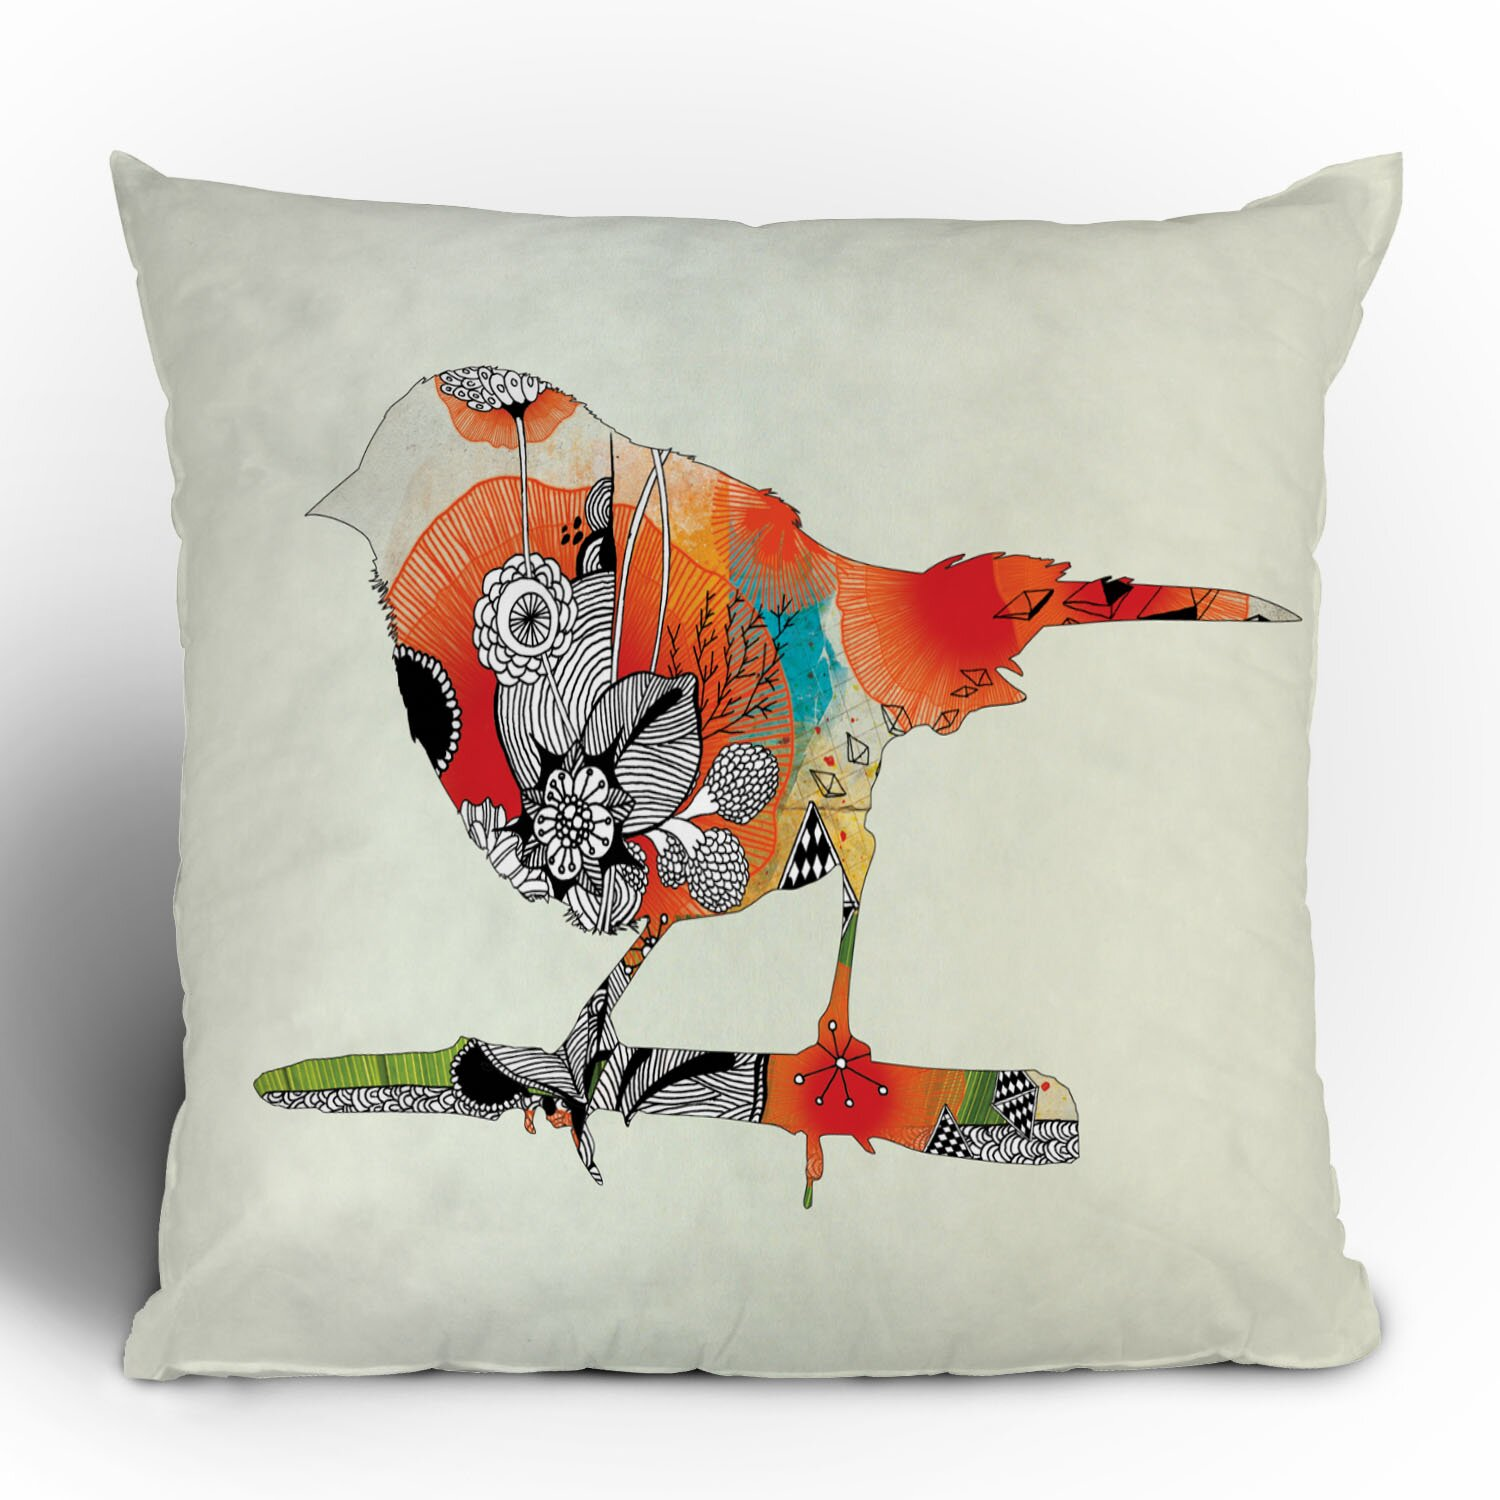 Bird Pattern Throw Pillows : DENY Designs Iveta Abolina Little Bird Throw Pillow & Reviews Wayfair